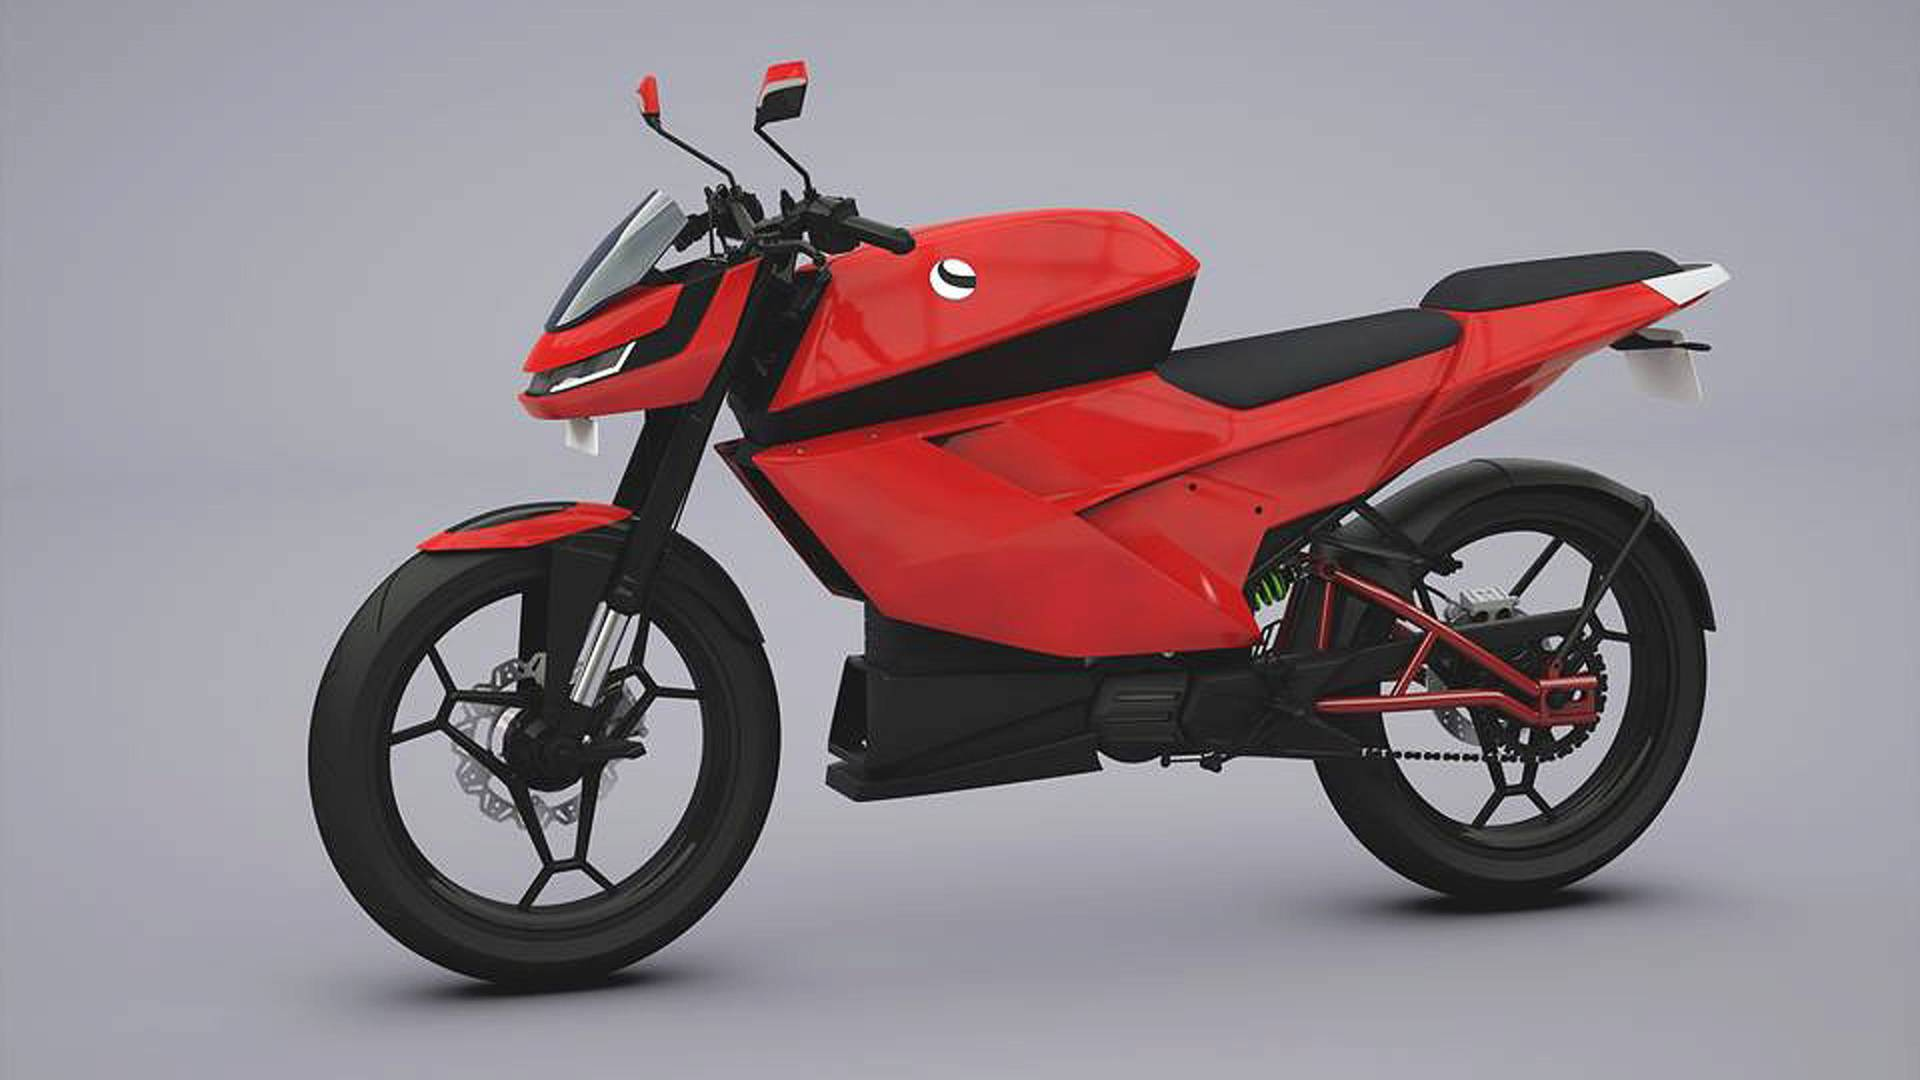 India To Restrict Its Market To Electric Motorcycles By 2025